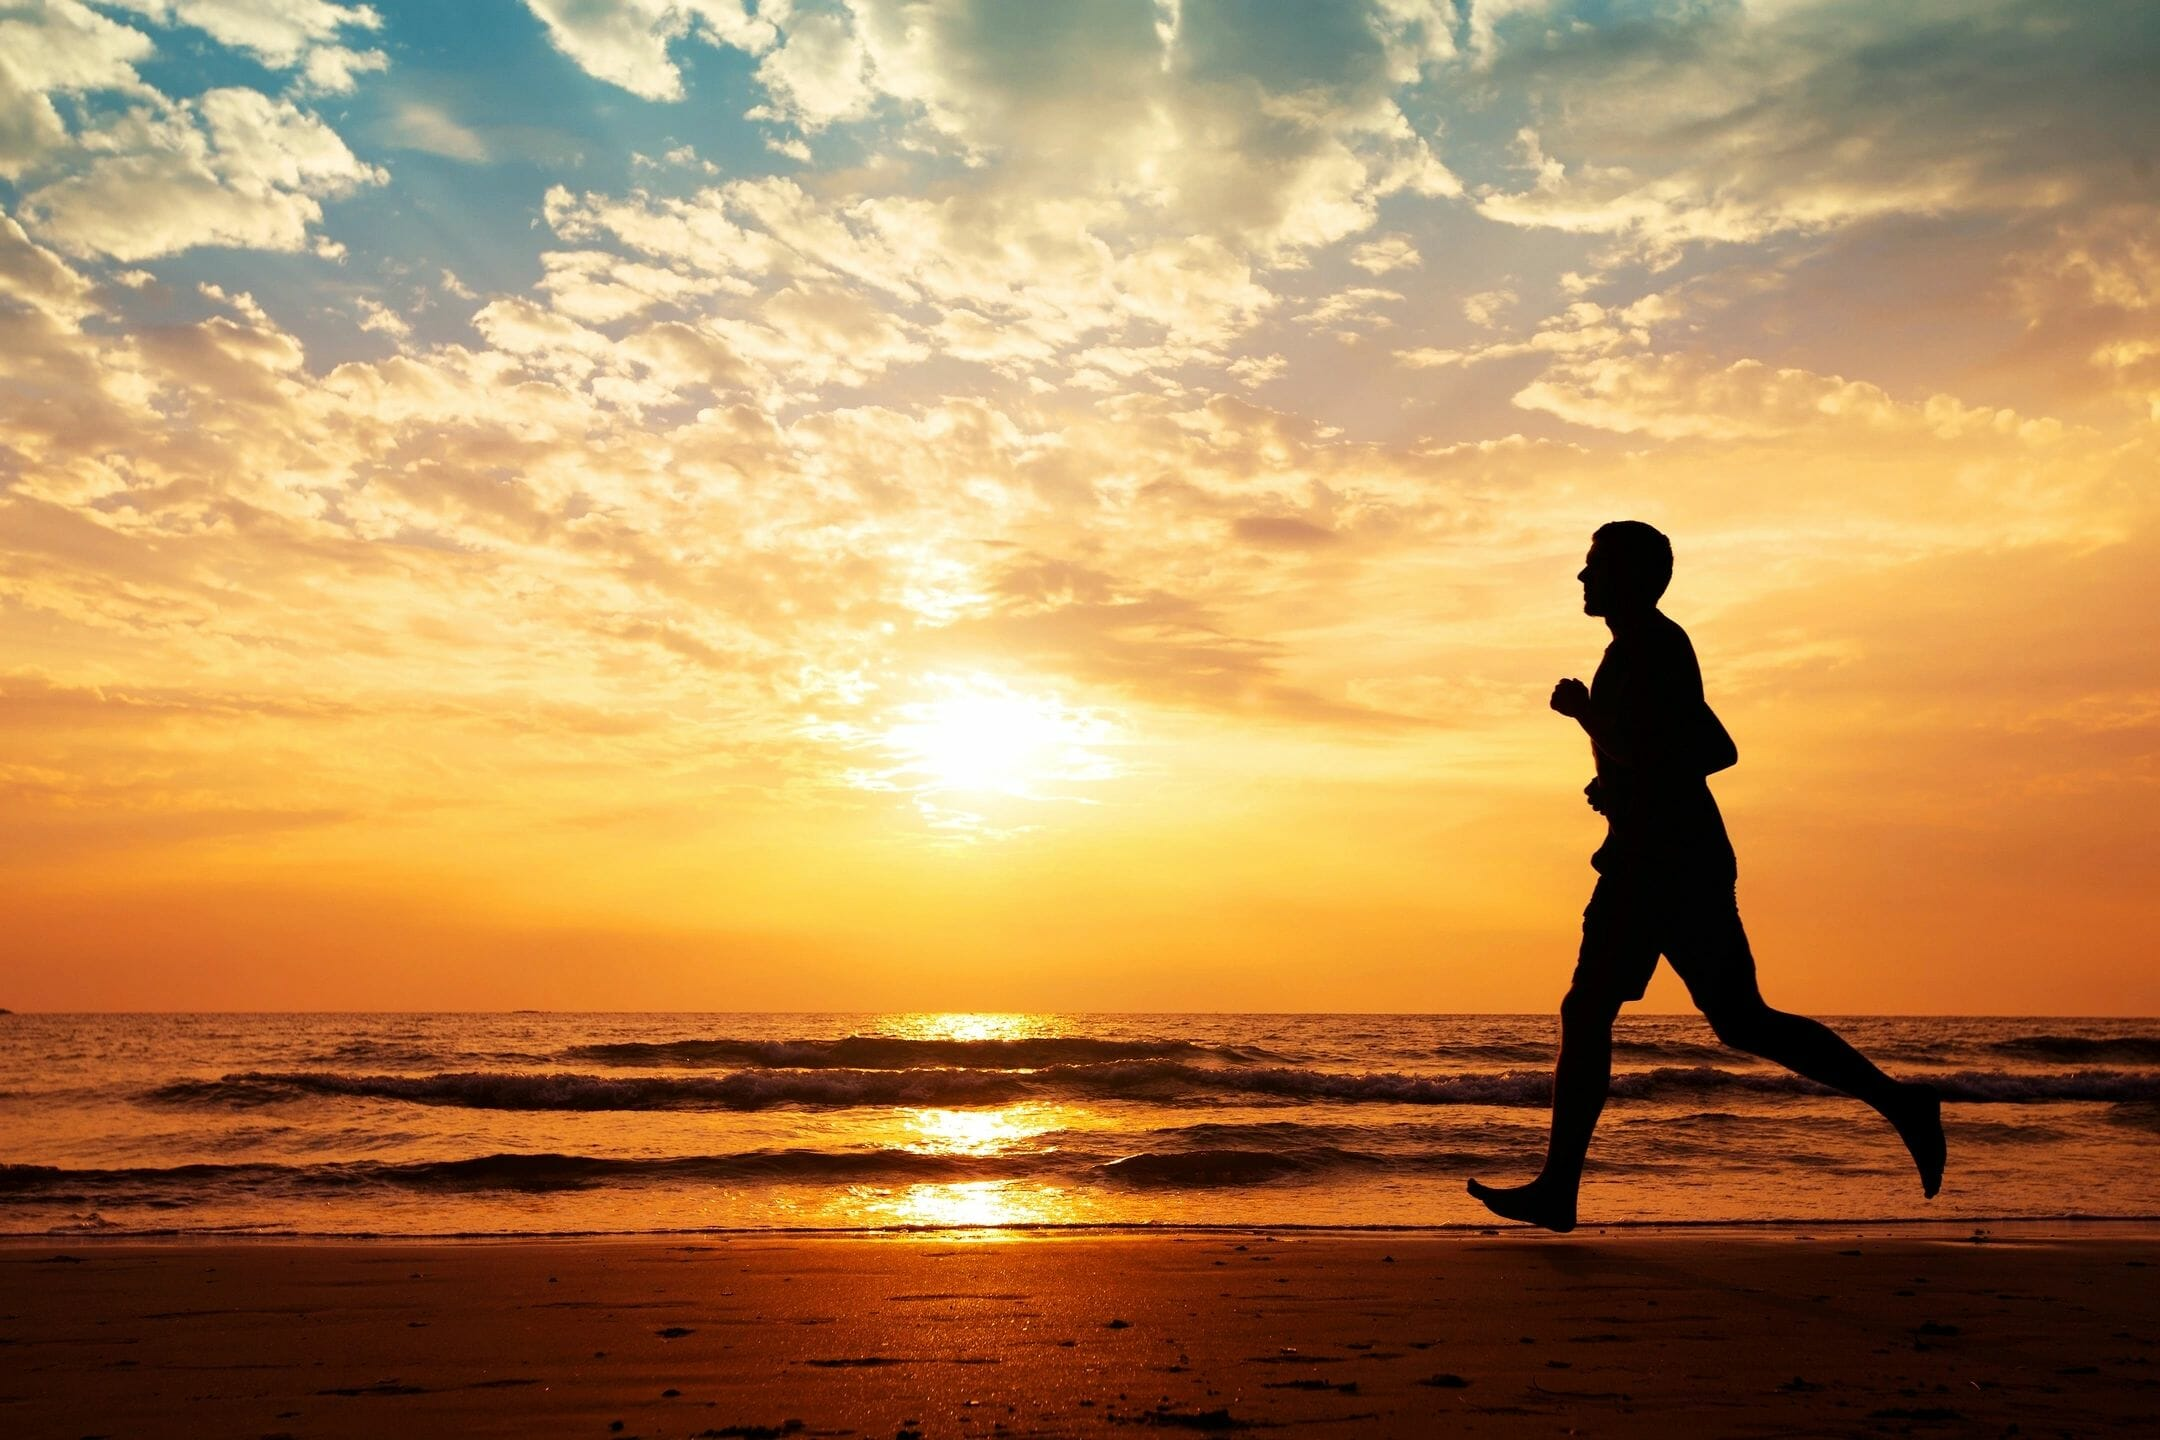 Man jogging as part of healthy living